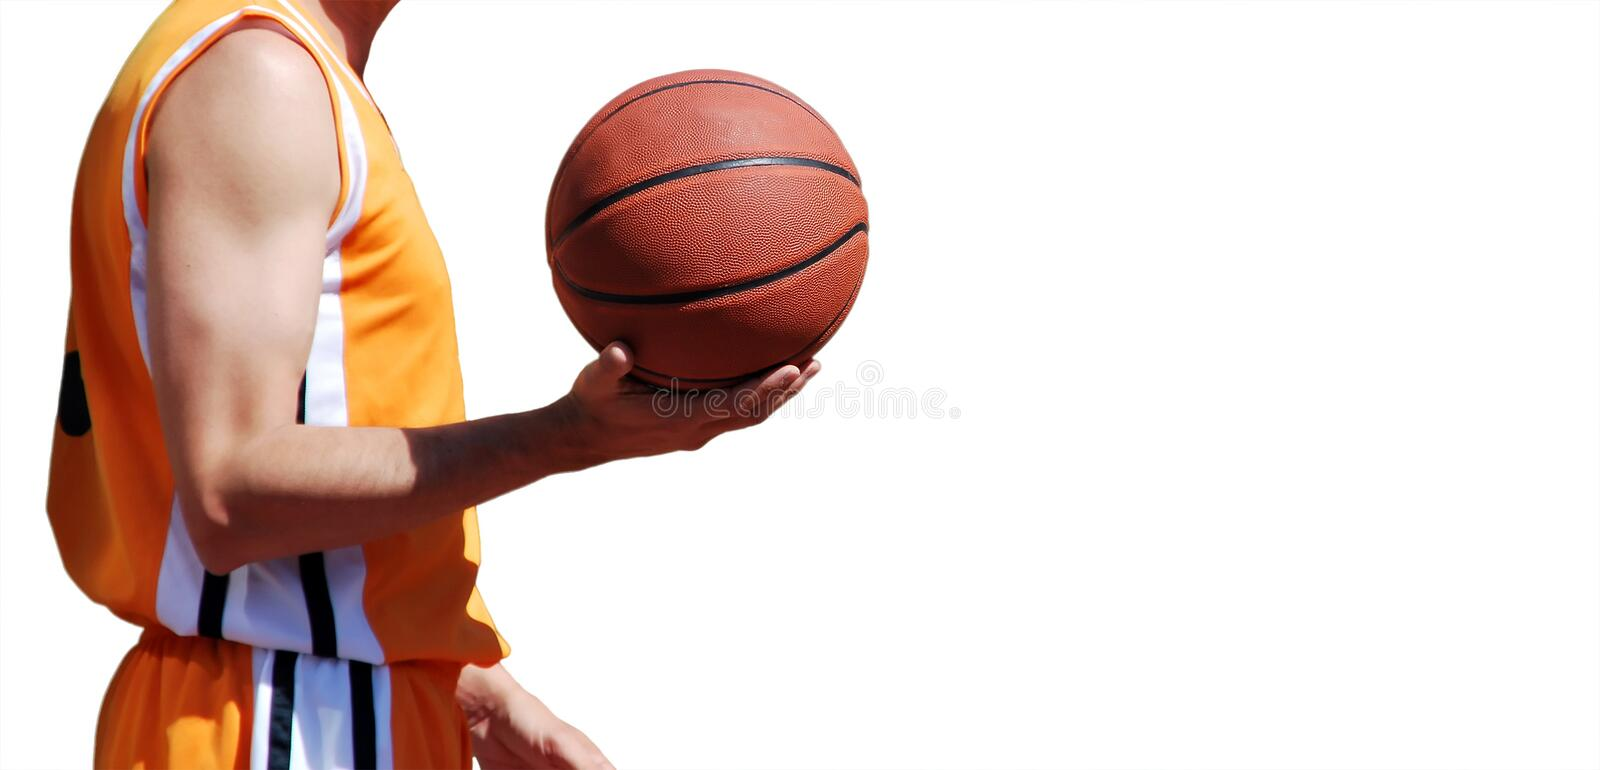 Holding a Basket ball isolated stock photos